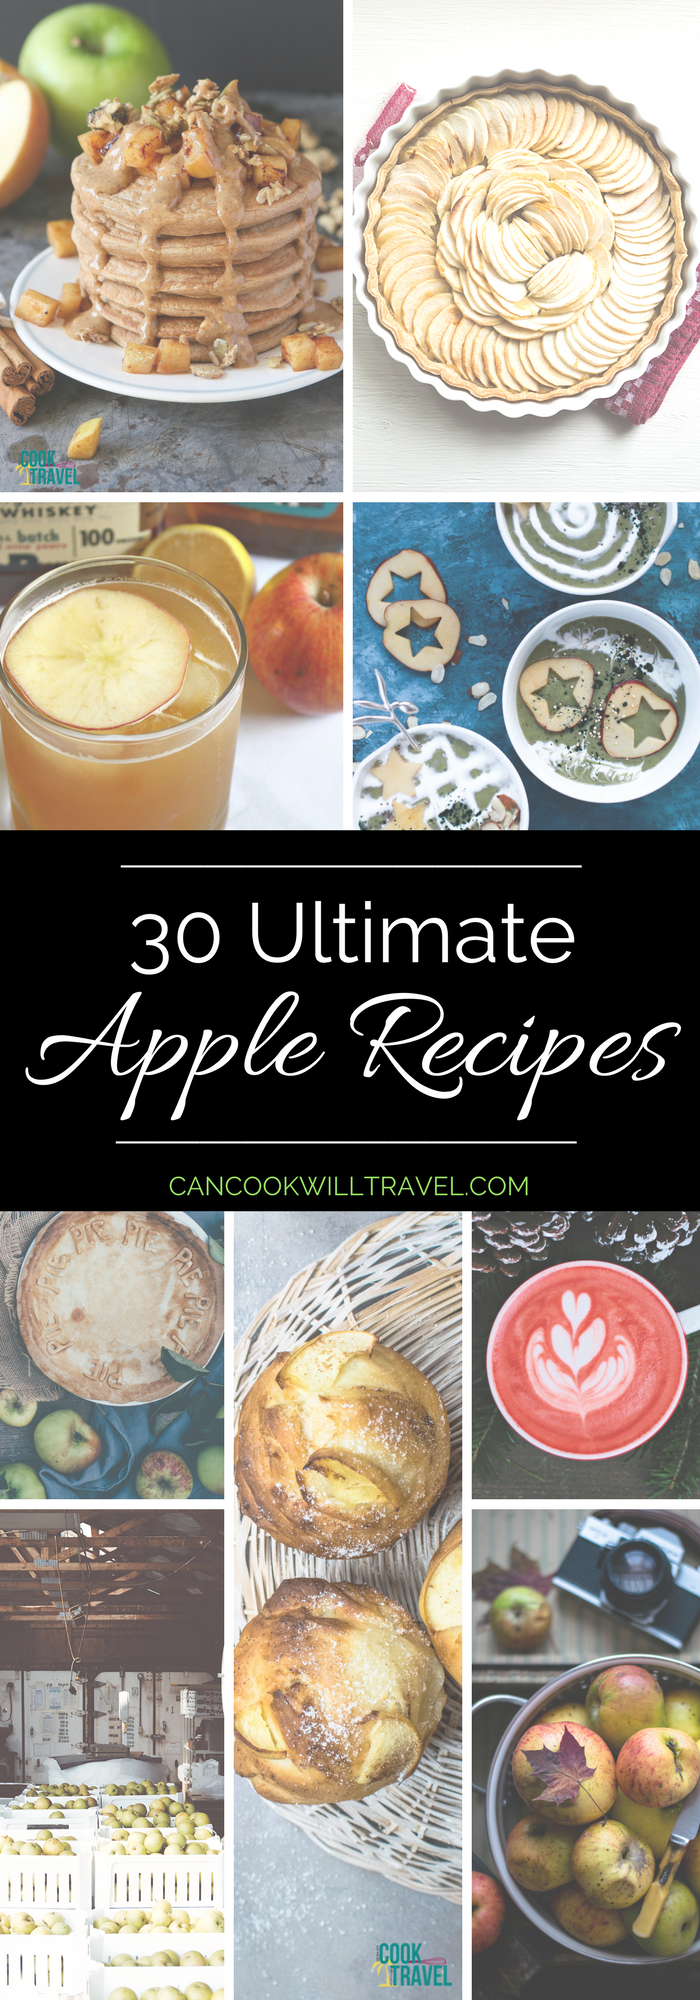 Ultimate 30 Apple Recipes_Tall